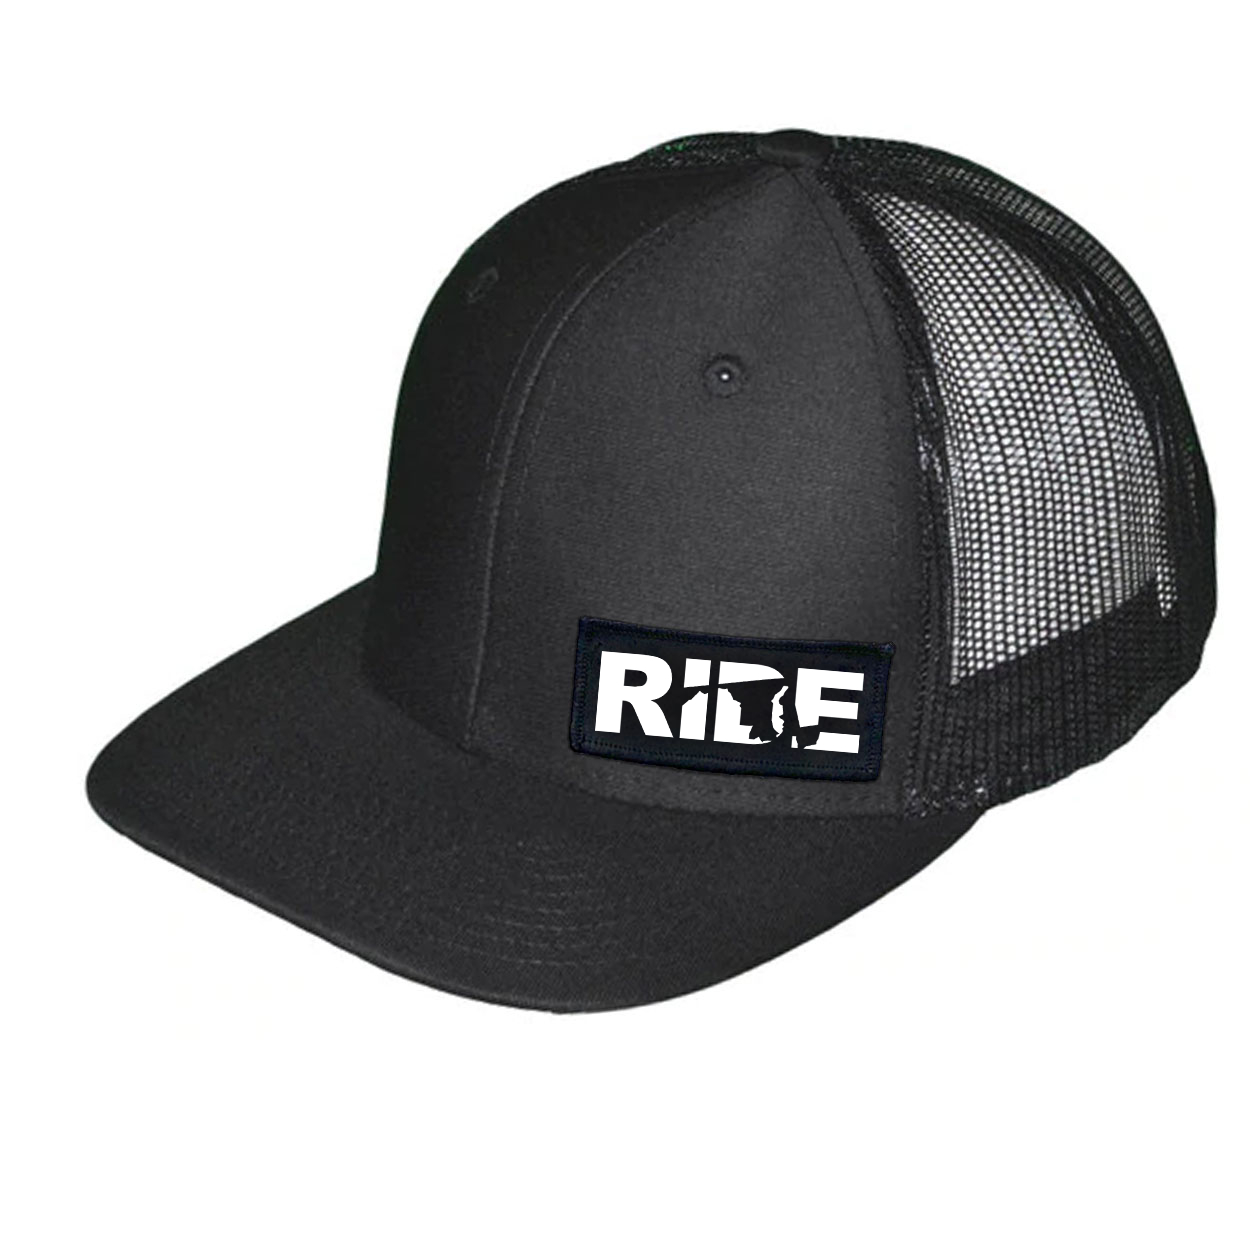 Ride Maryland Night Out Woven Patch Snapback Trucker Hat Black (White Logo)